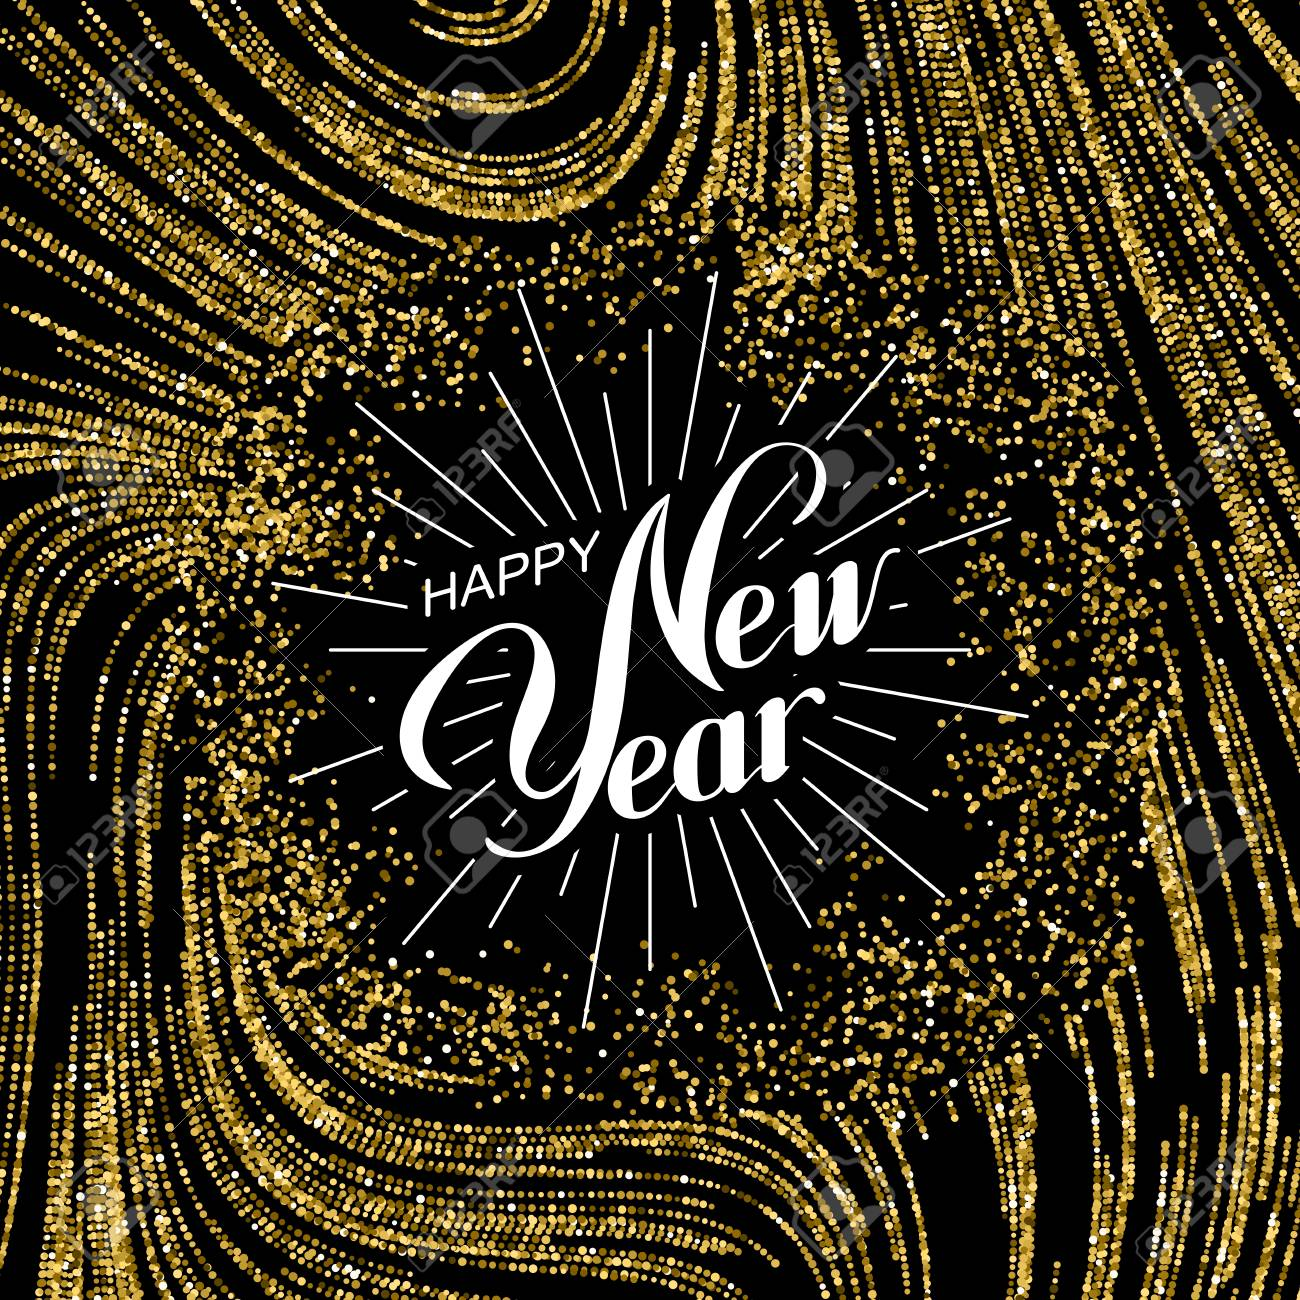 Happy New Year. Holiday Illustration. Lettering Composition With Golden Glitters - 65354608